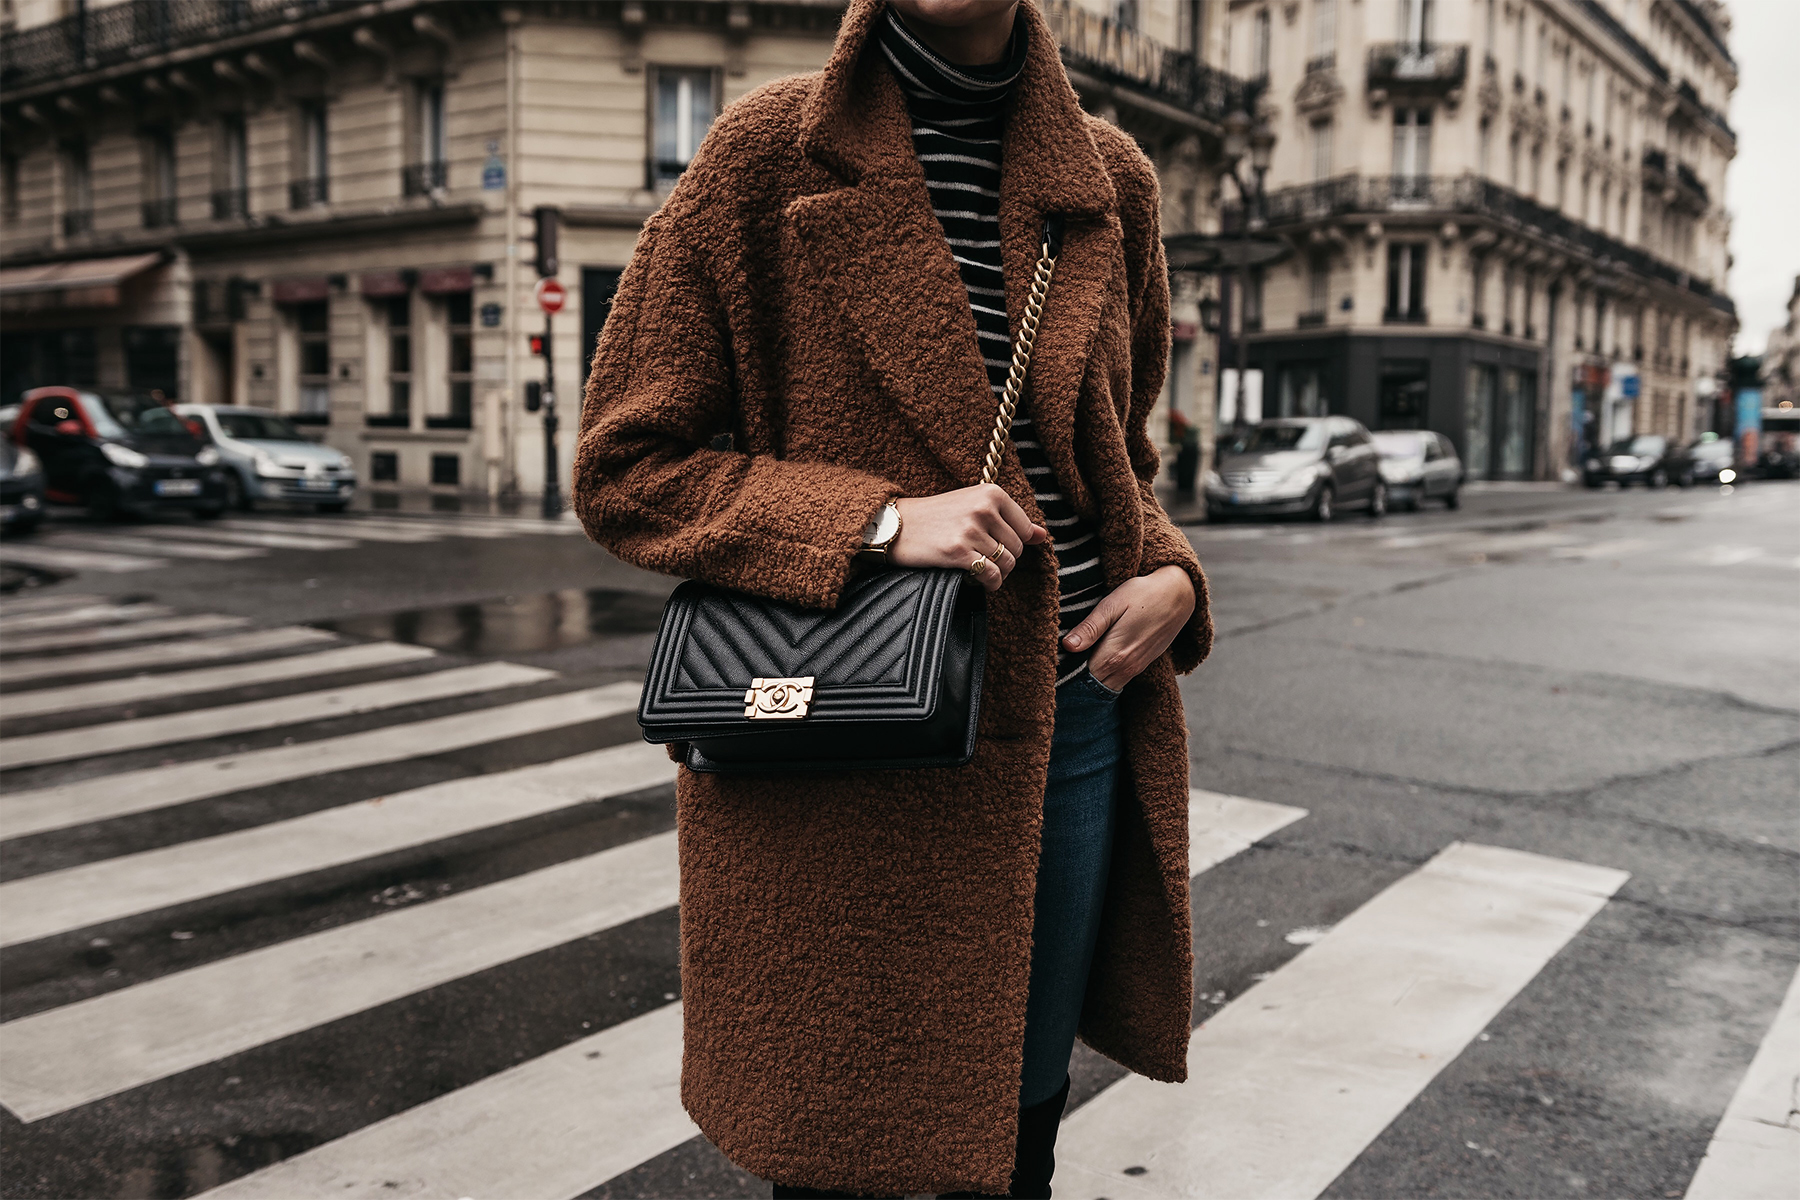 Teddy Bear Coat Black White Stripe Turtleneck Sweater Chanel Boy Bag Paris Street Style Fashion Jackson Dallas Blogger Fashion Blogger Street Style